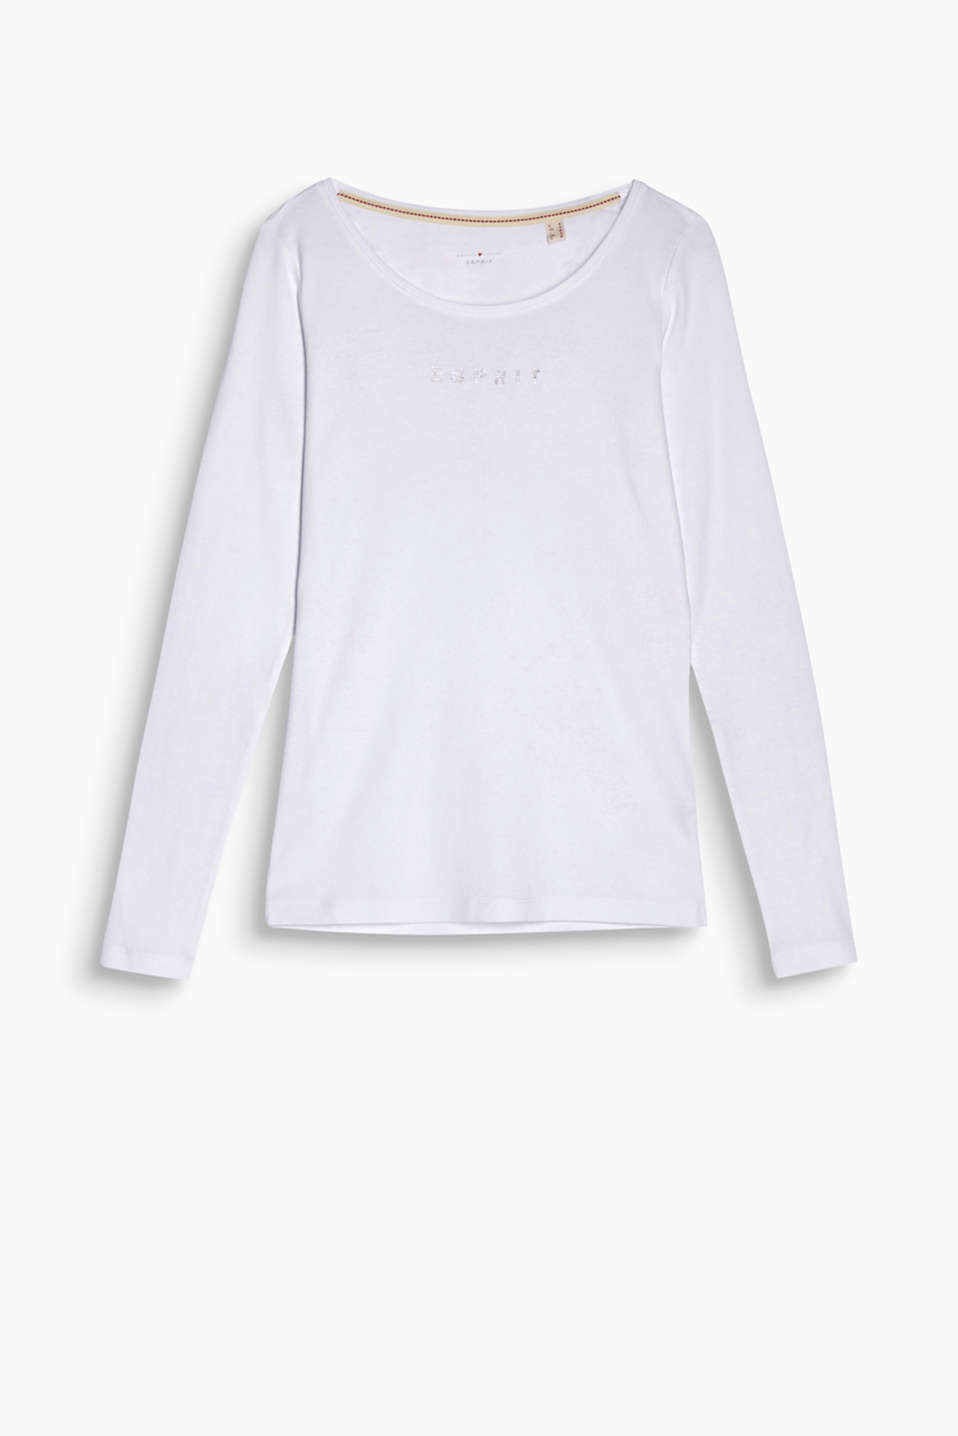 Your comfortable favourite top with a glamorous twist: Long sleeve top in dense jersey with a subtle rhinestone logo